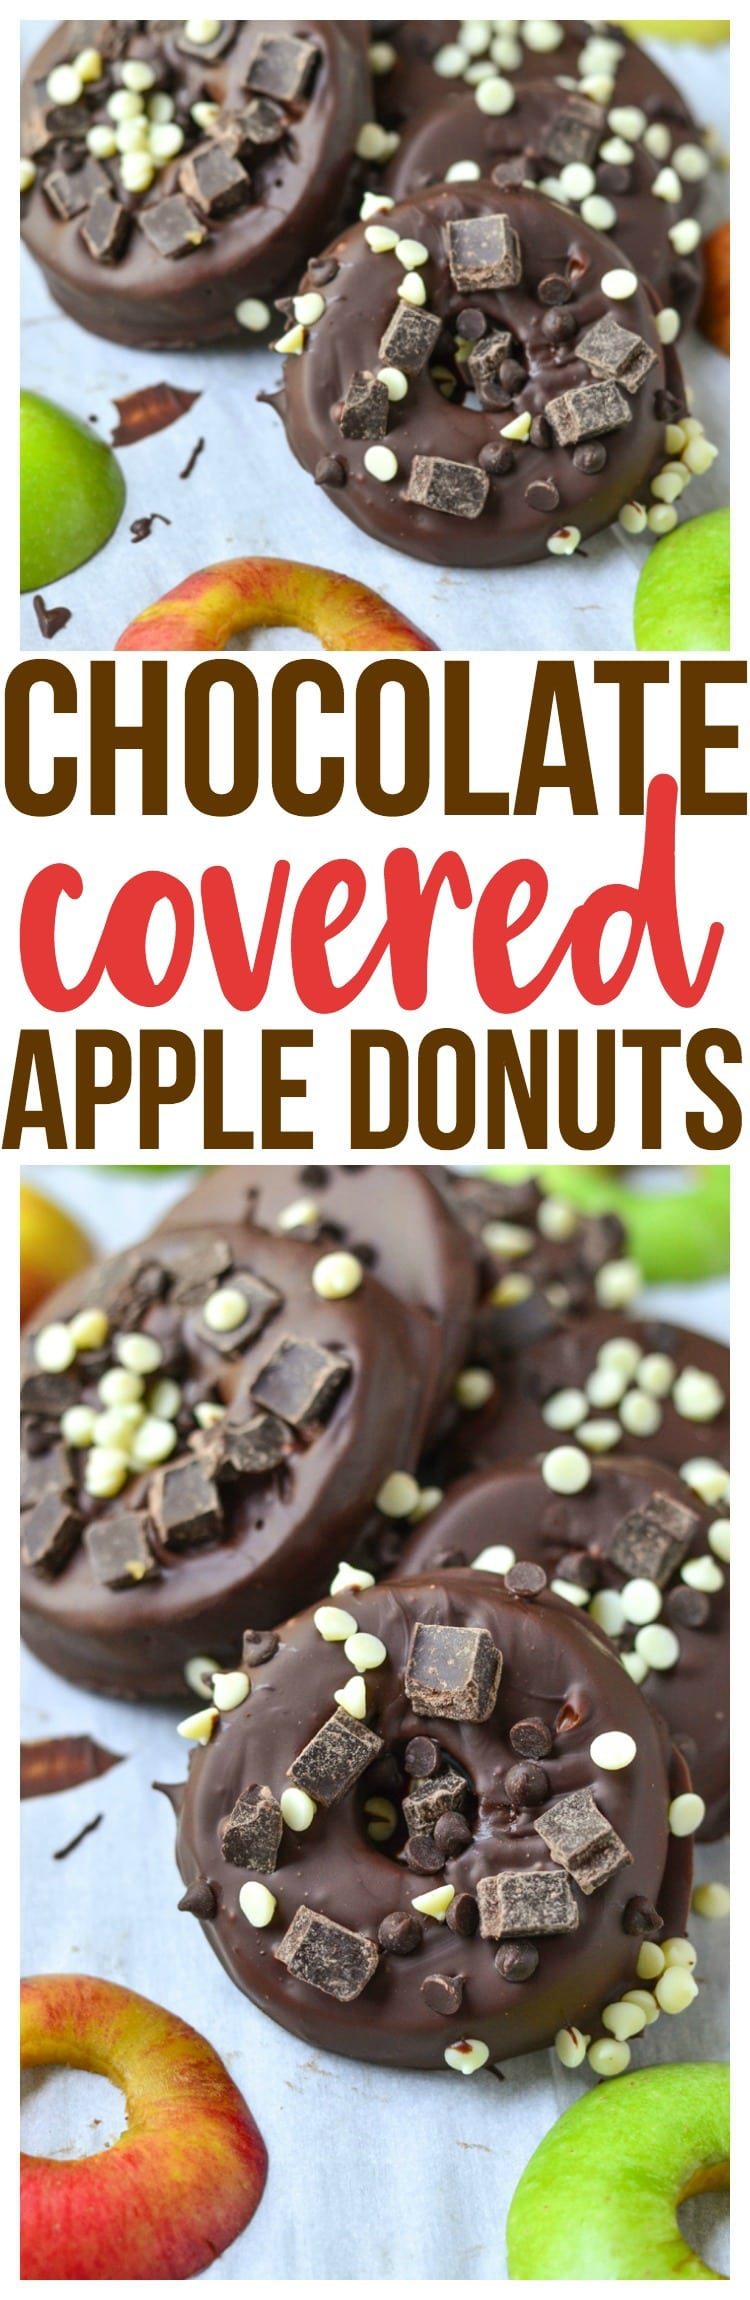 chocolate covered apple donuts simple and quick easy healthy snack ideas no bake fall treat fall season apple picking vegetarian recipe